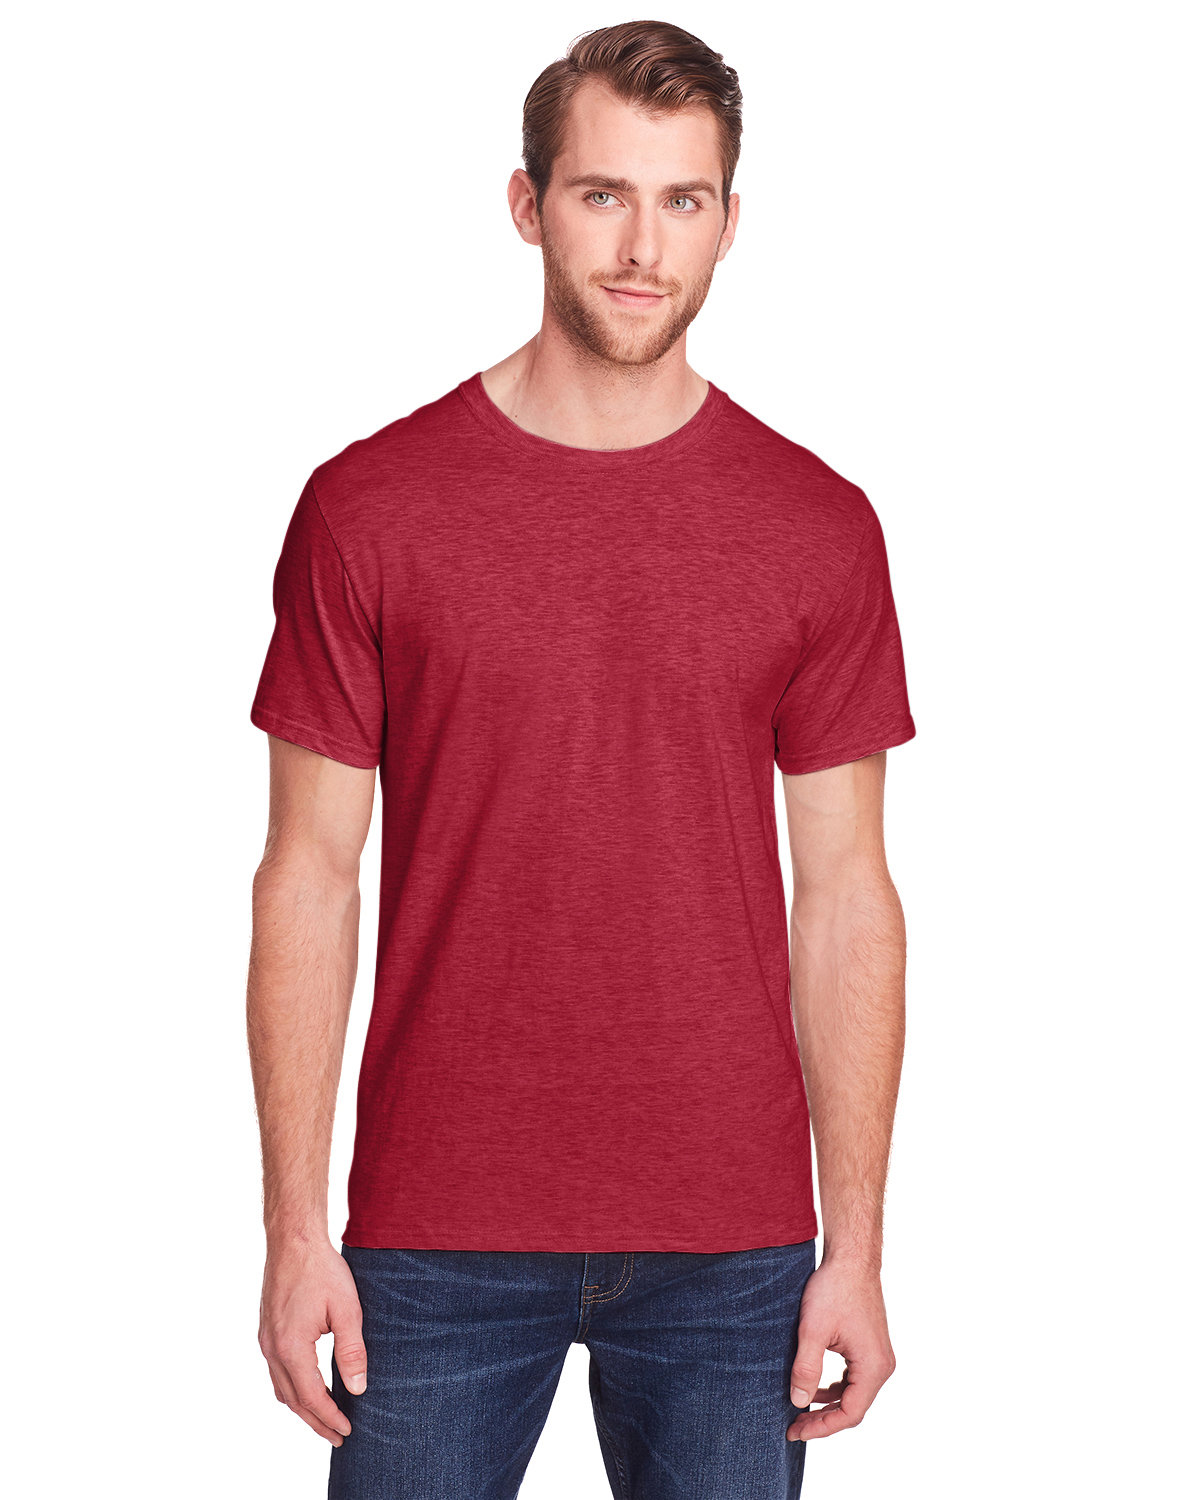 Fruit of the Loom Adult ICONIC™ T-Shirt PEPPERED RED HTH